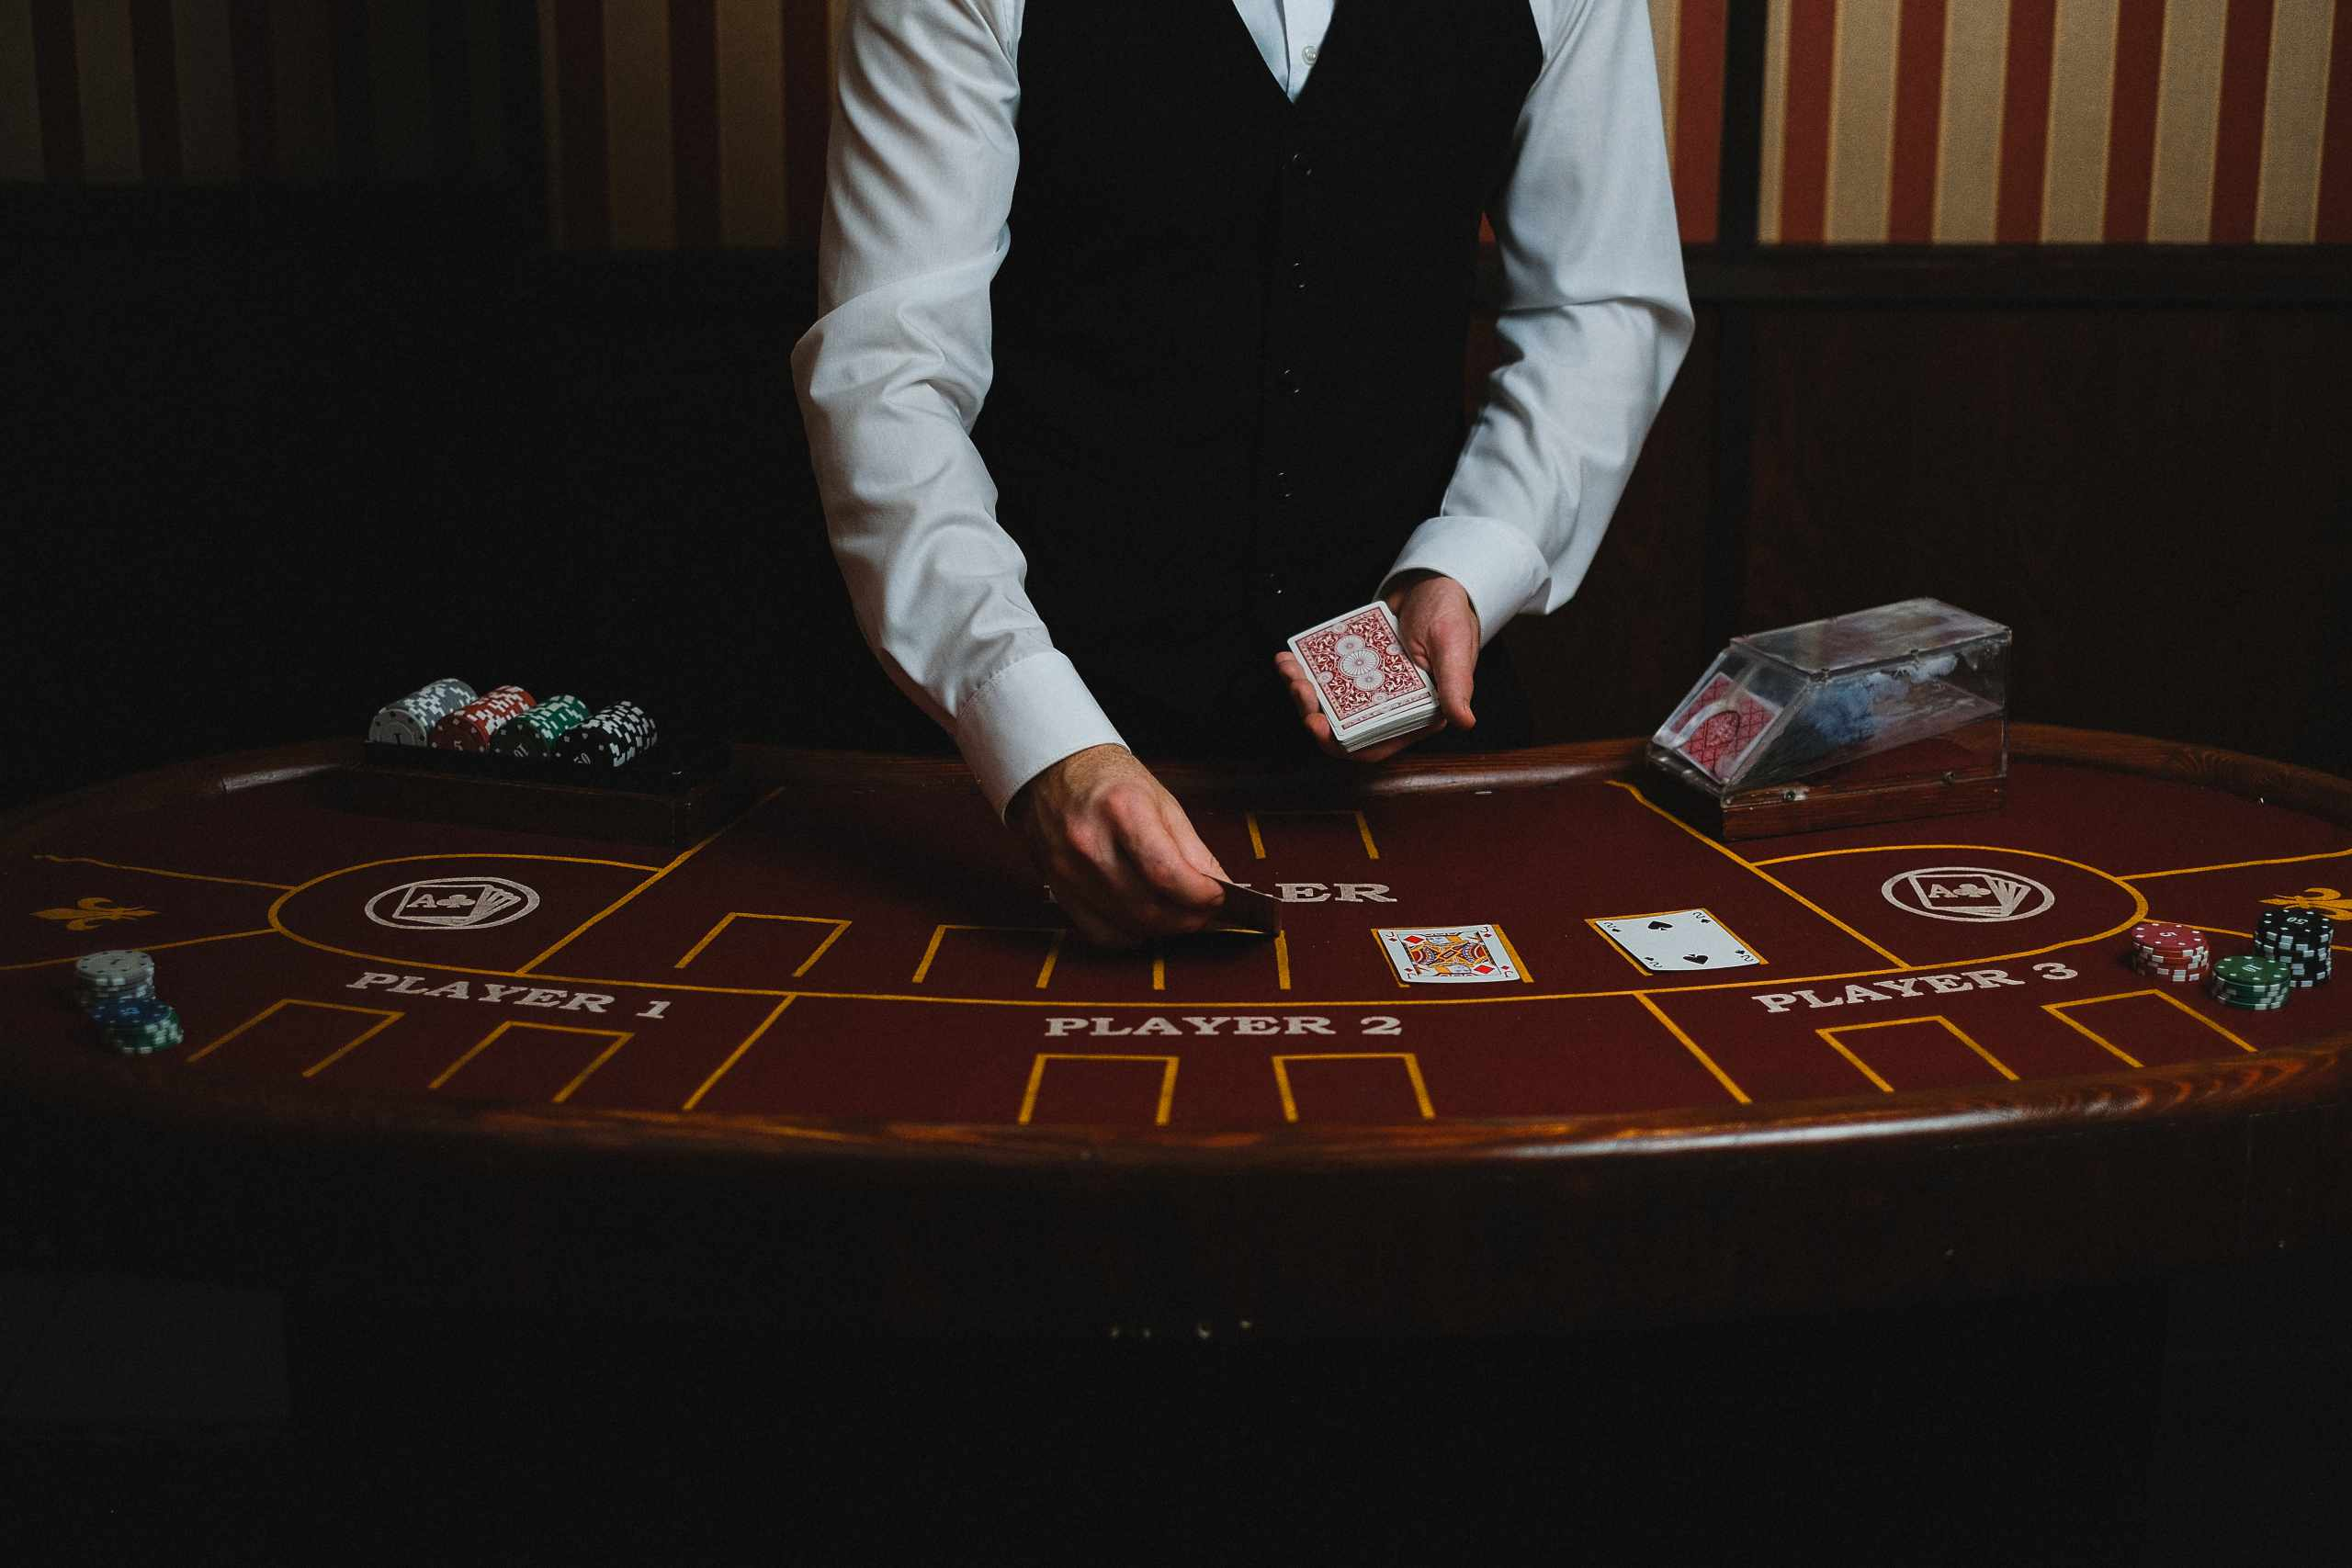 Tips for Playing Online Poker